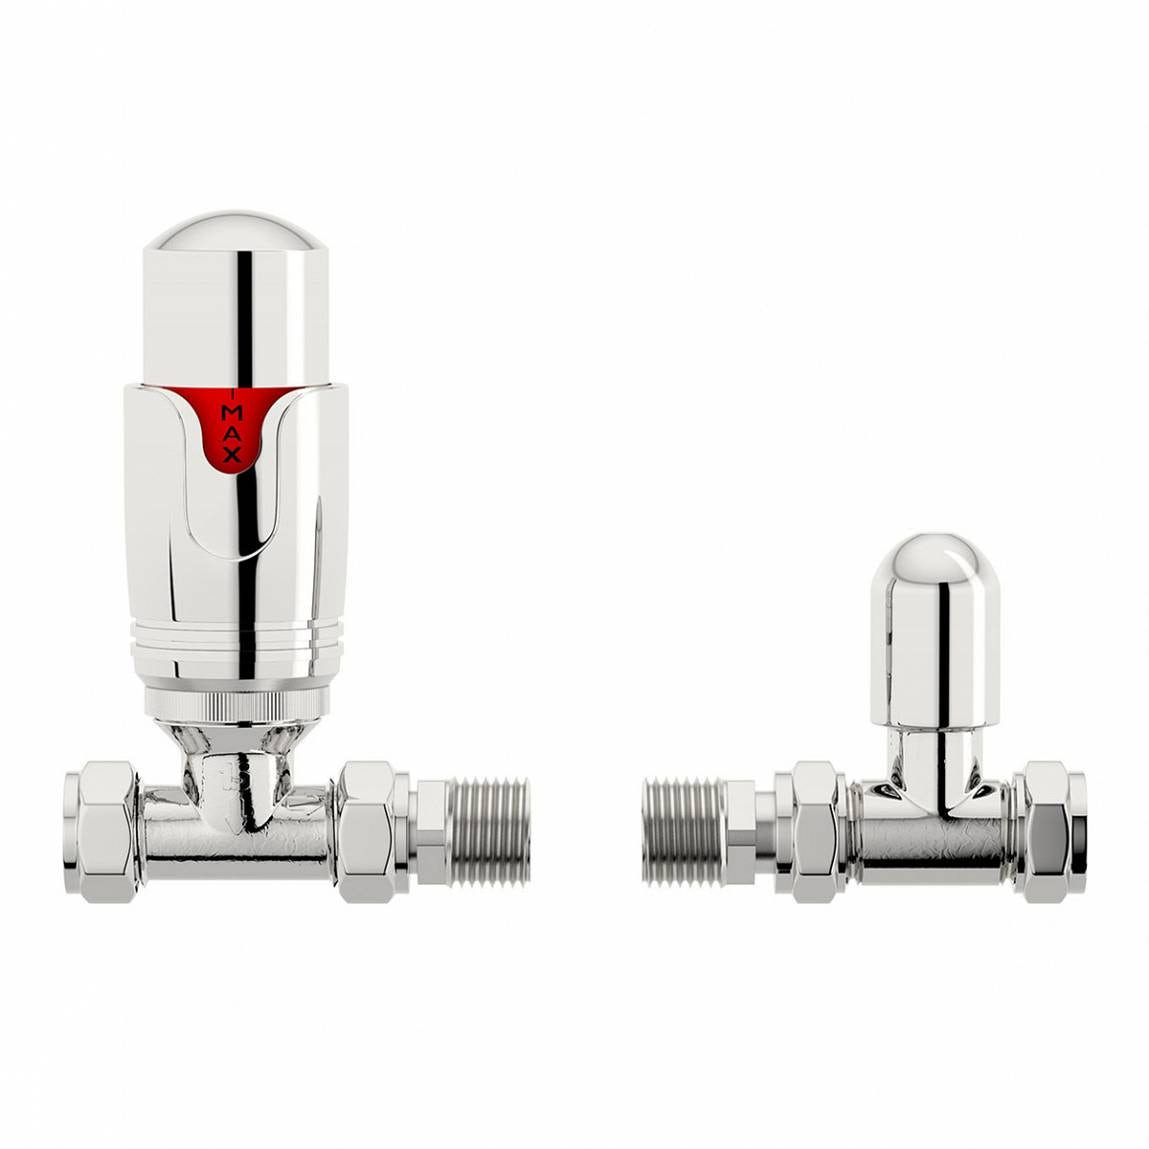 Orchard Thermostatic chrome straight radiator valves